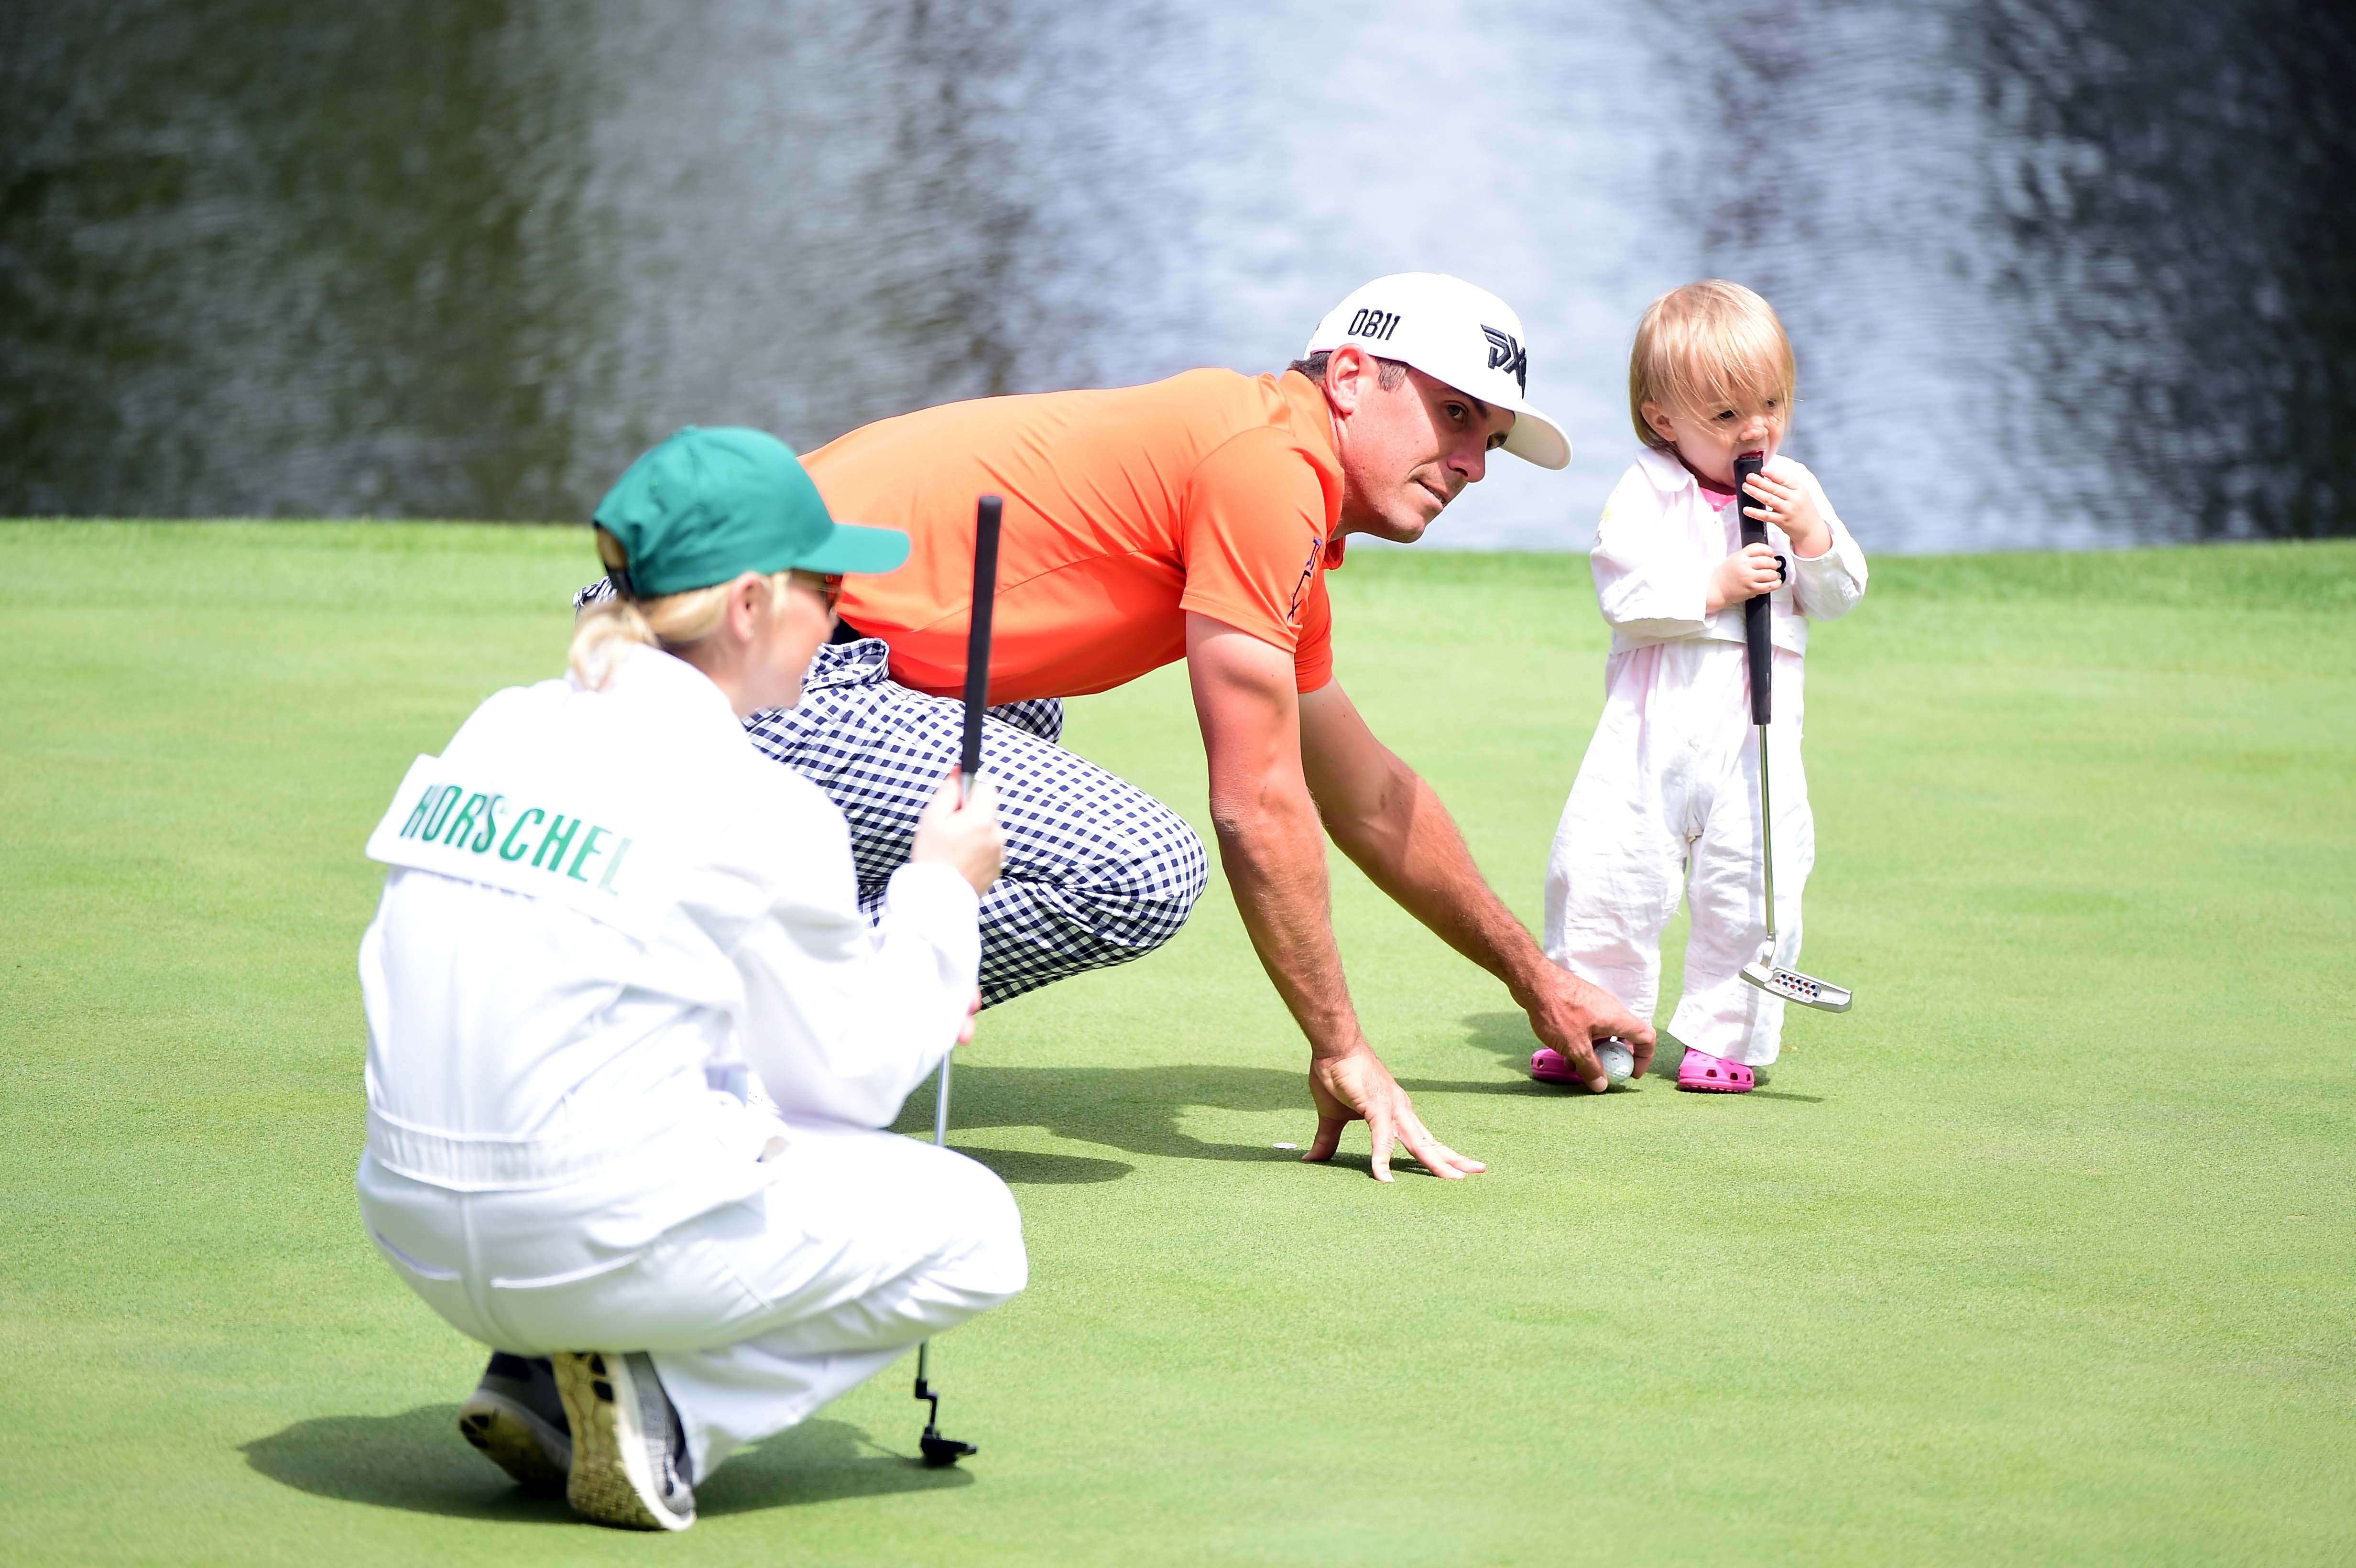 Billy and Brittany Horschel